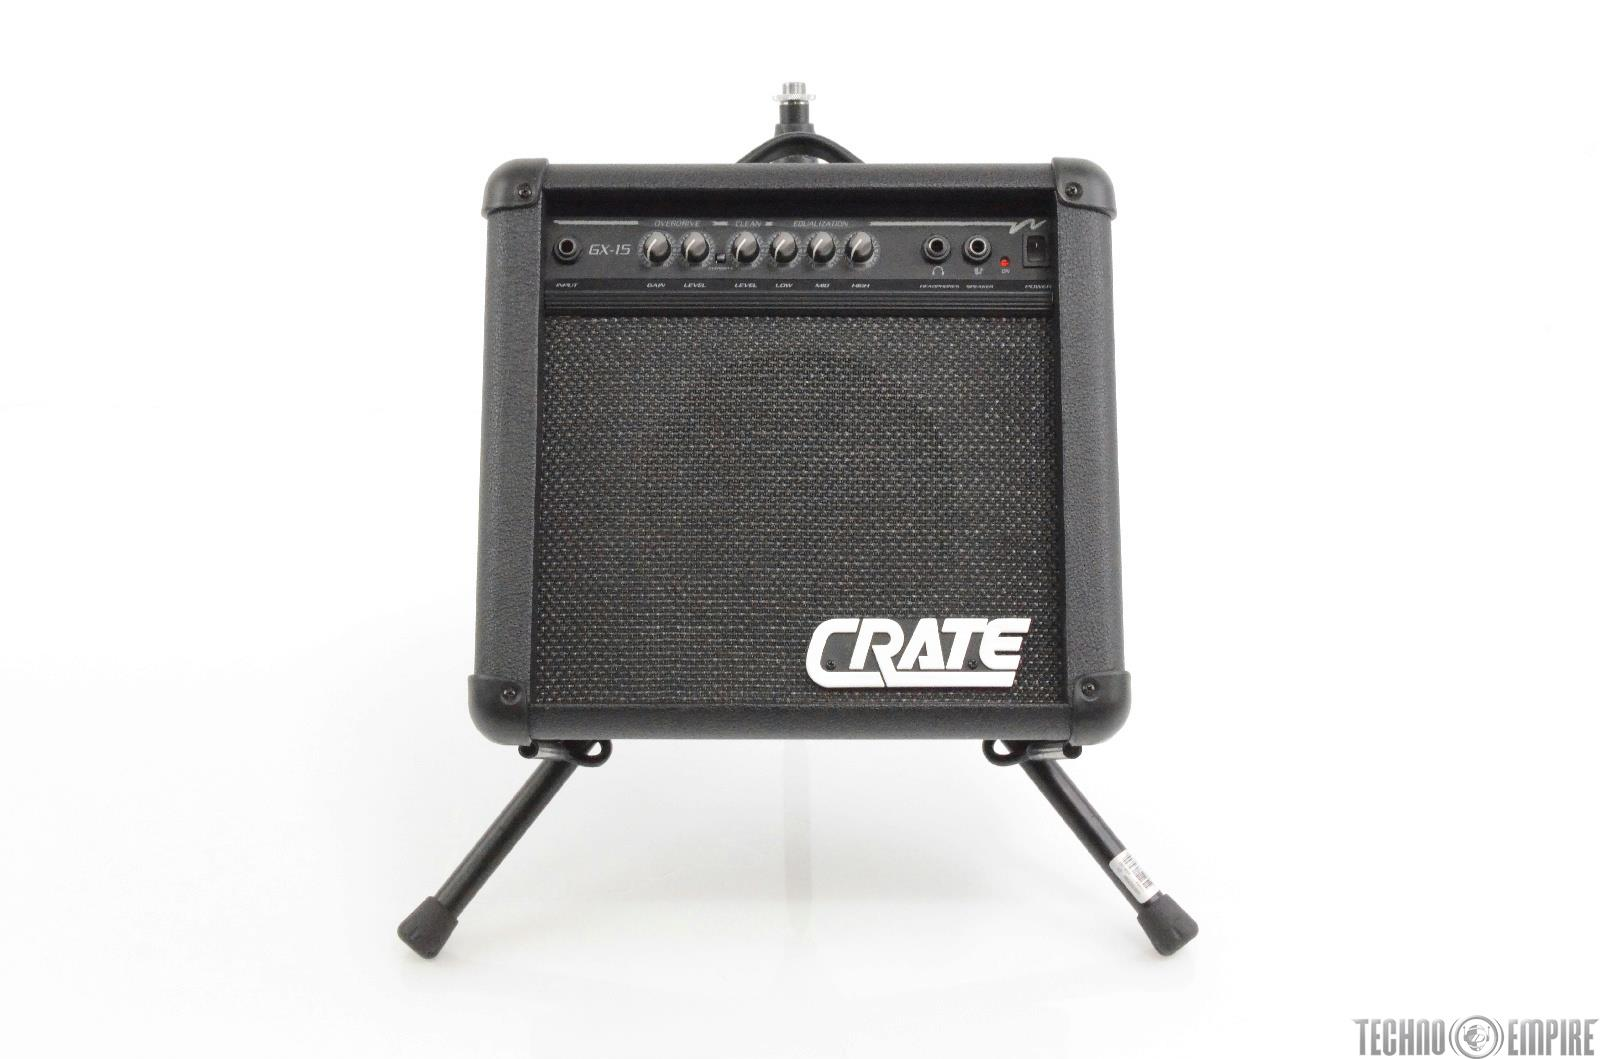 Crate GX-15 Guitar Amp w/ Ultimate Support Amp-150 Genesis Amp Stand GX15 #29940